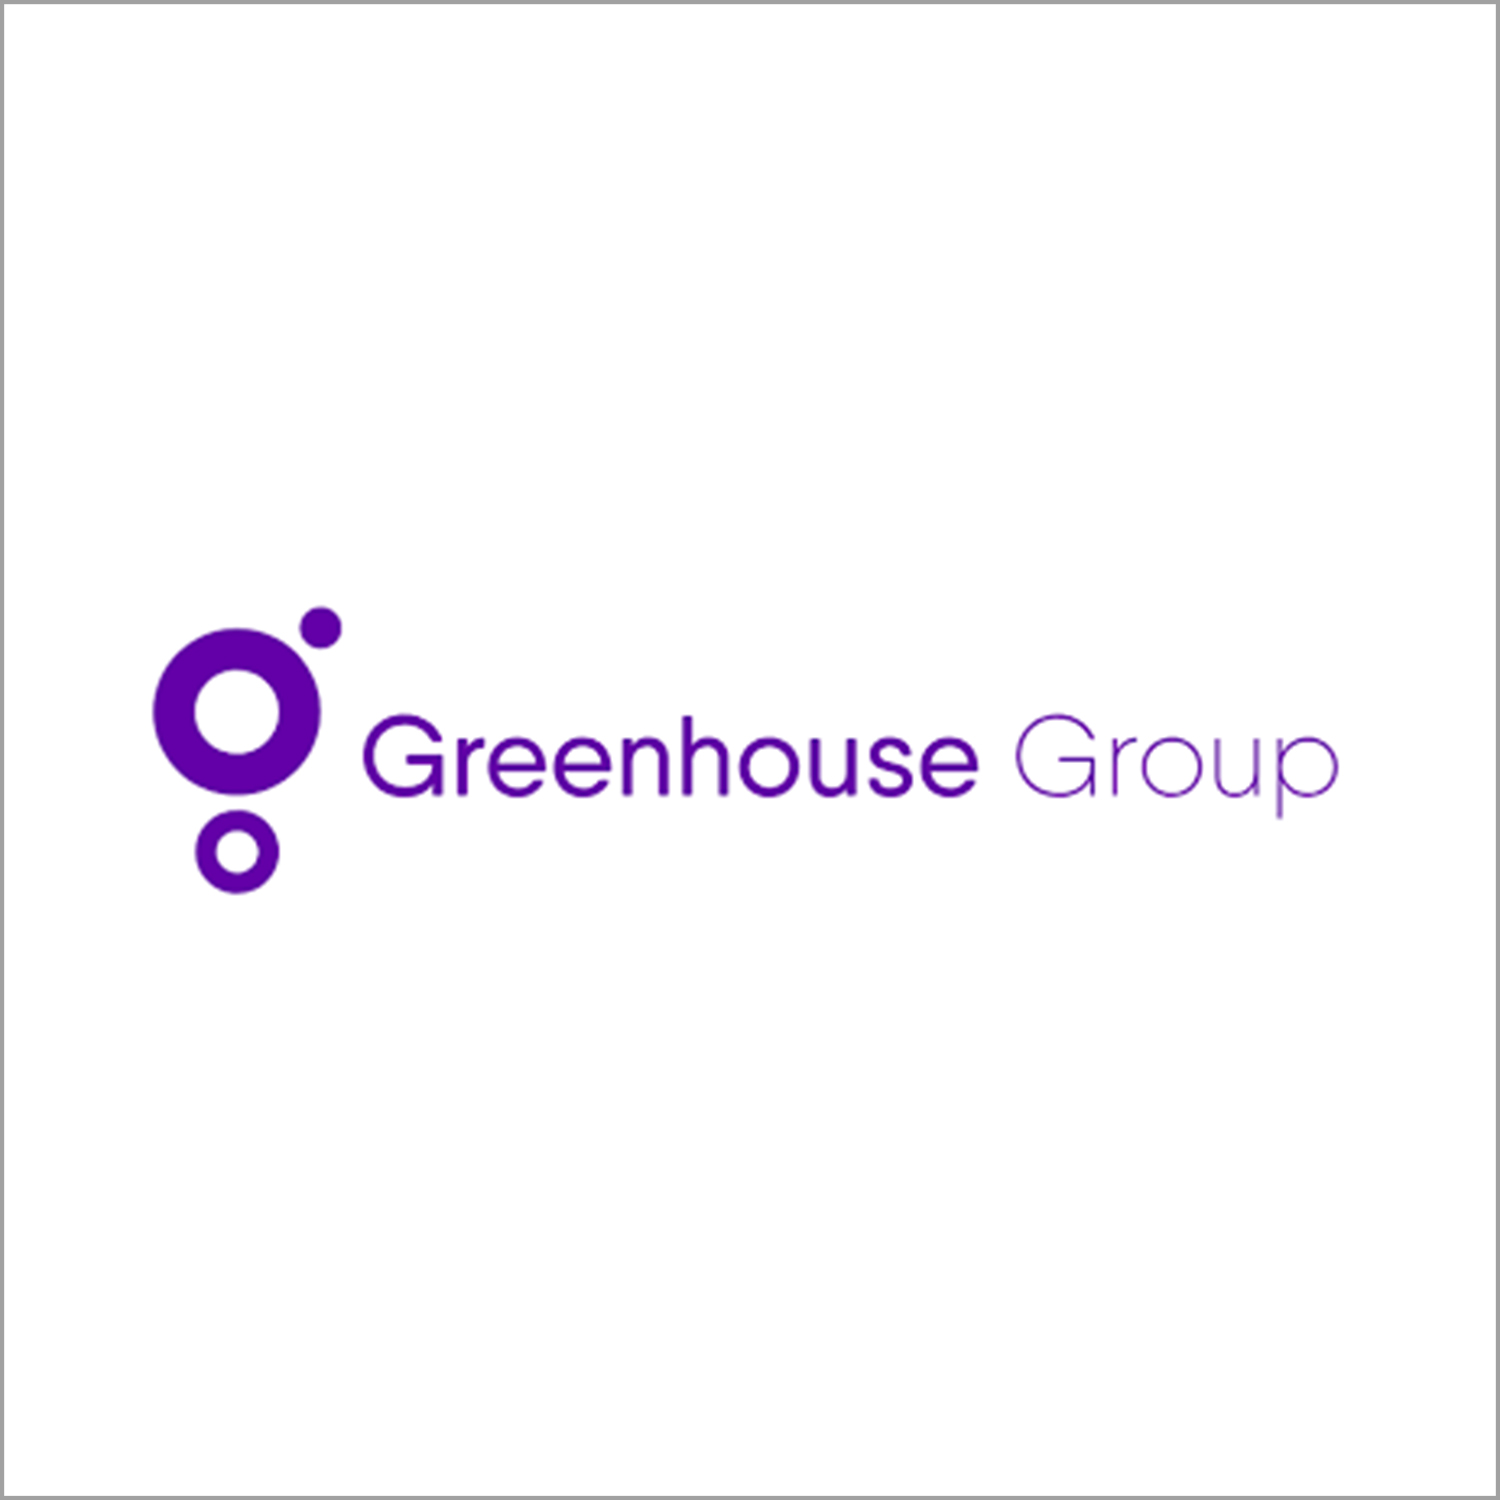 GroupM Greenhouse_GS_Members_Logos.jpg